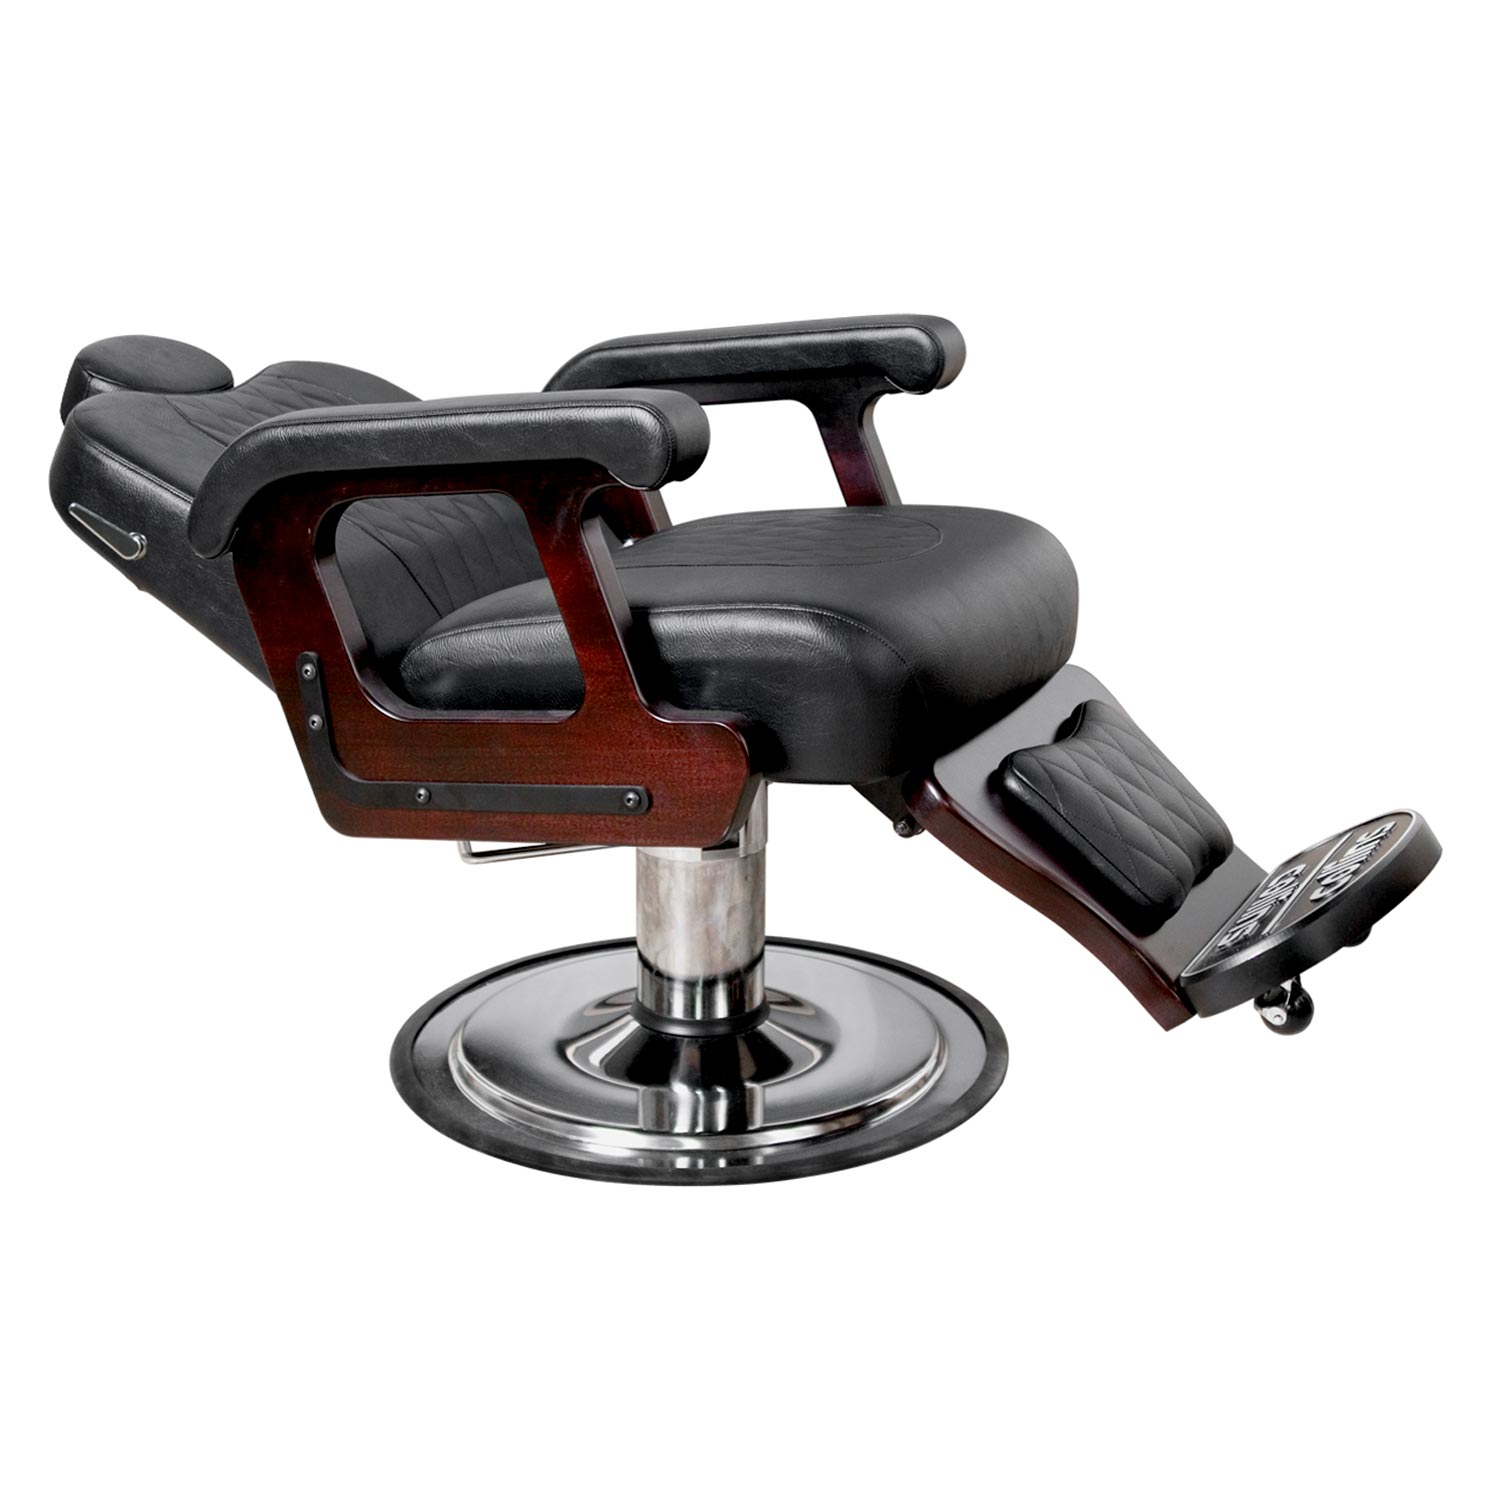 Collins B10 Commander Barber Chair alternative product image 5